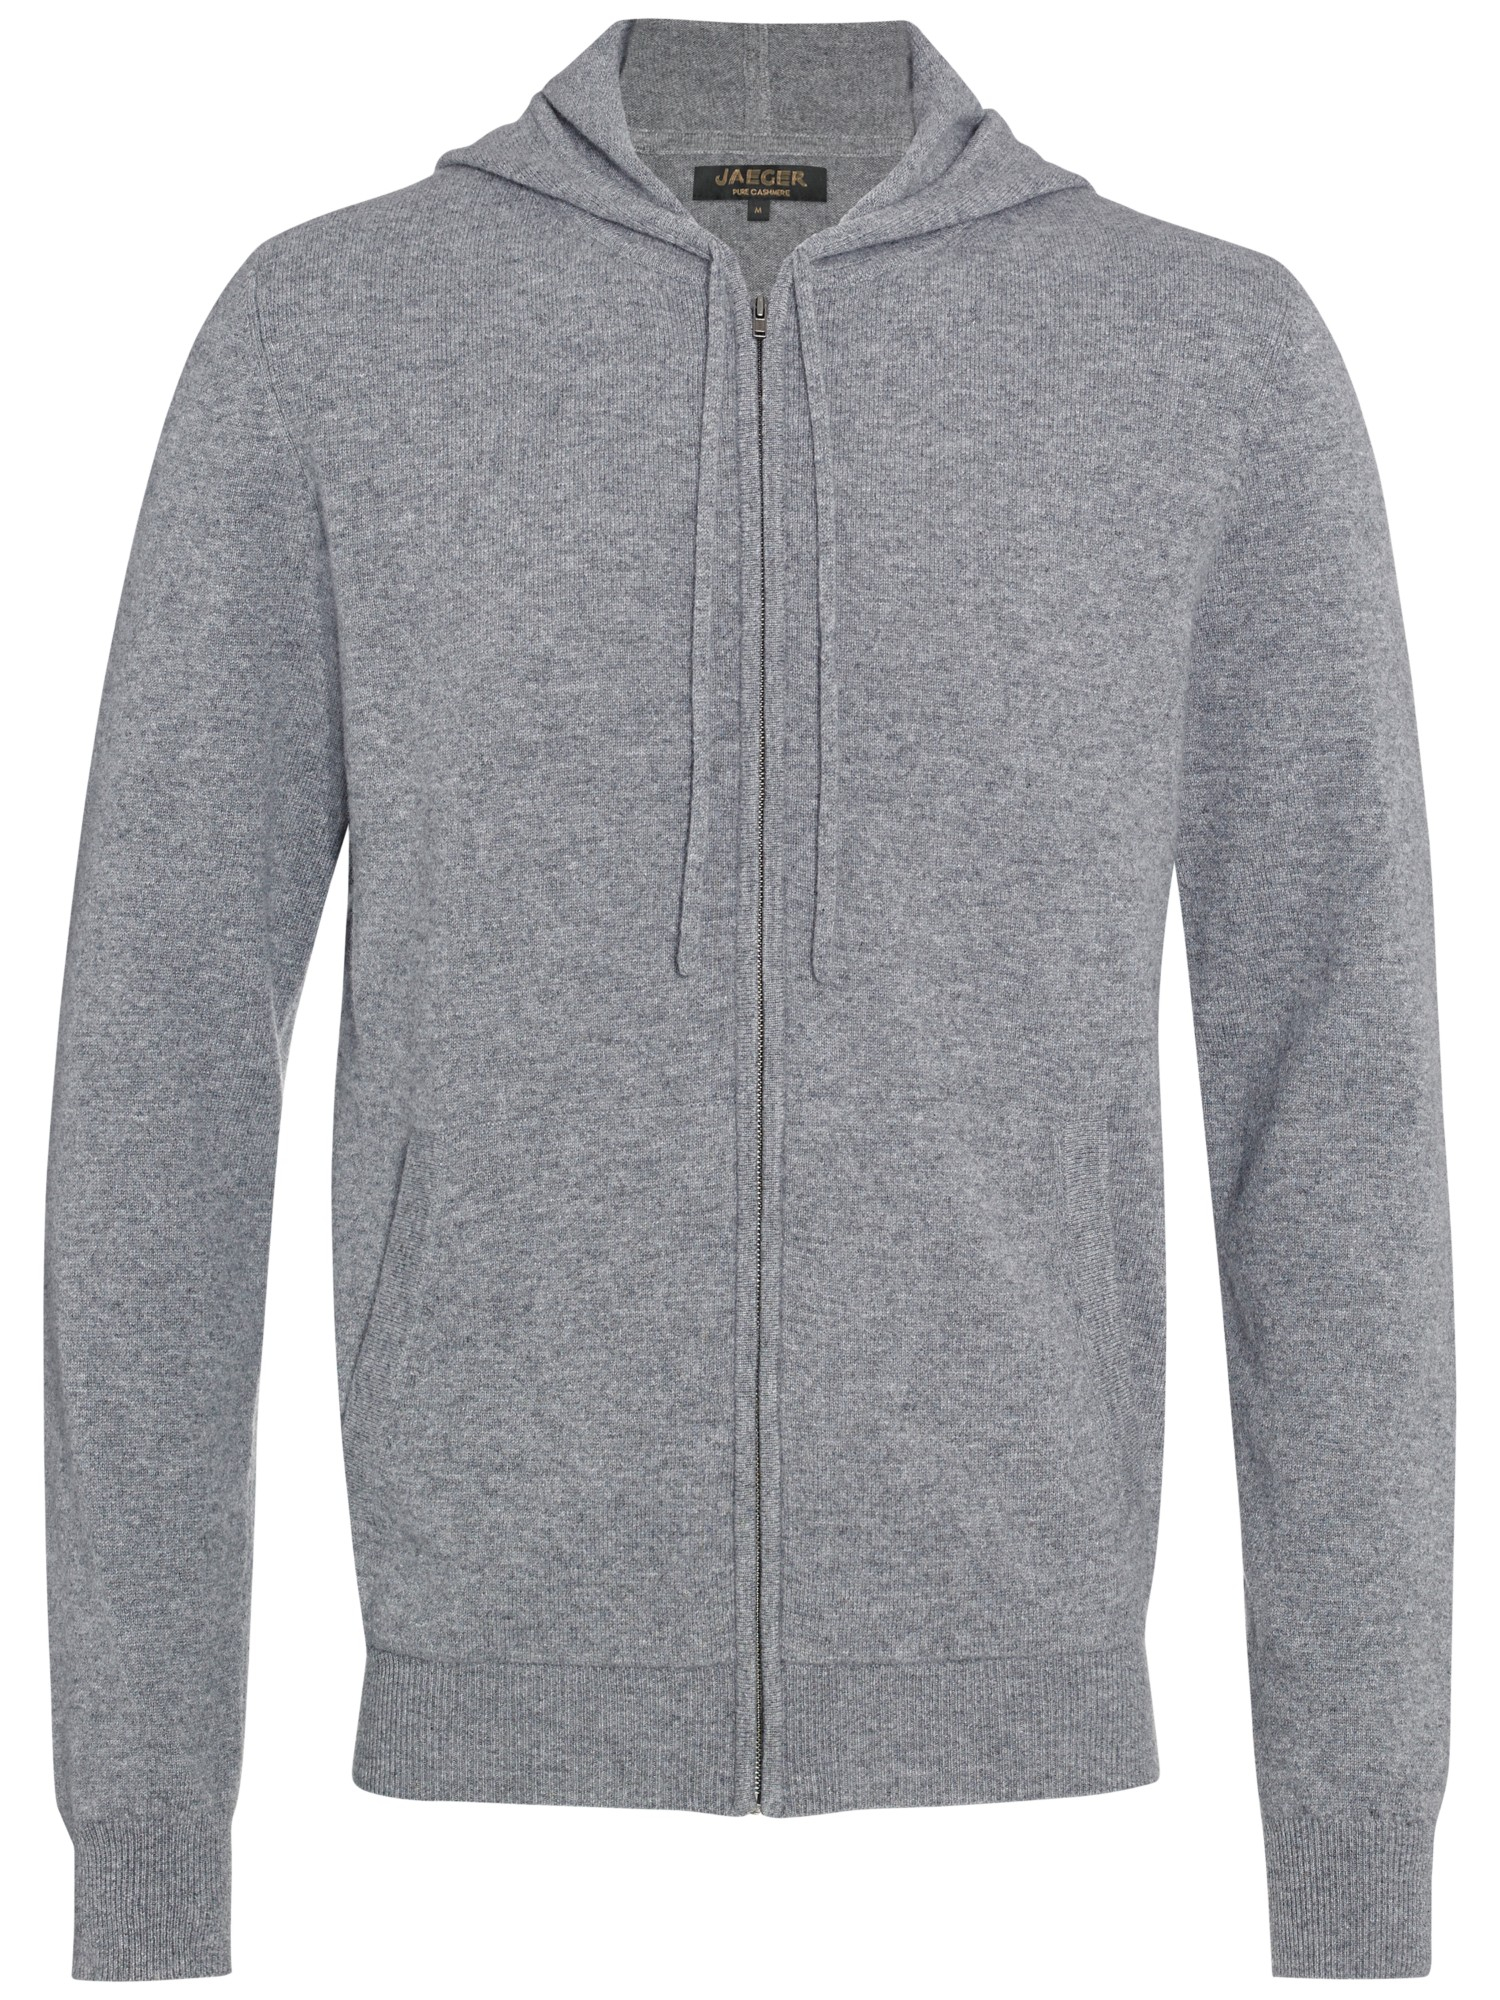 Men's Hooded Cotton Jersey Sweatshirt